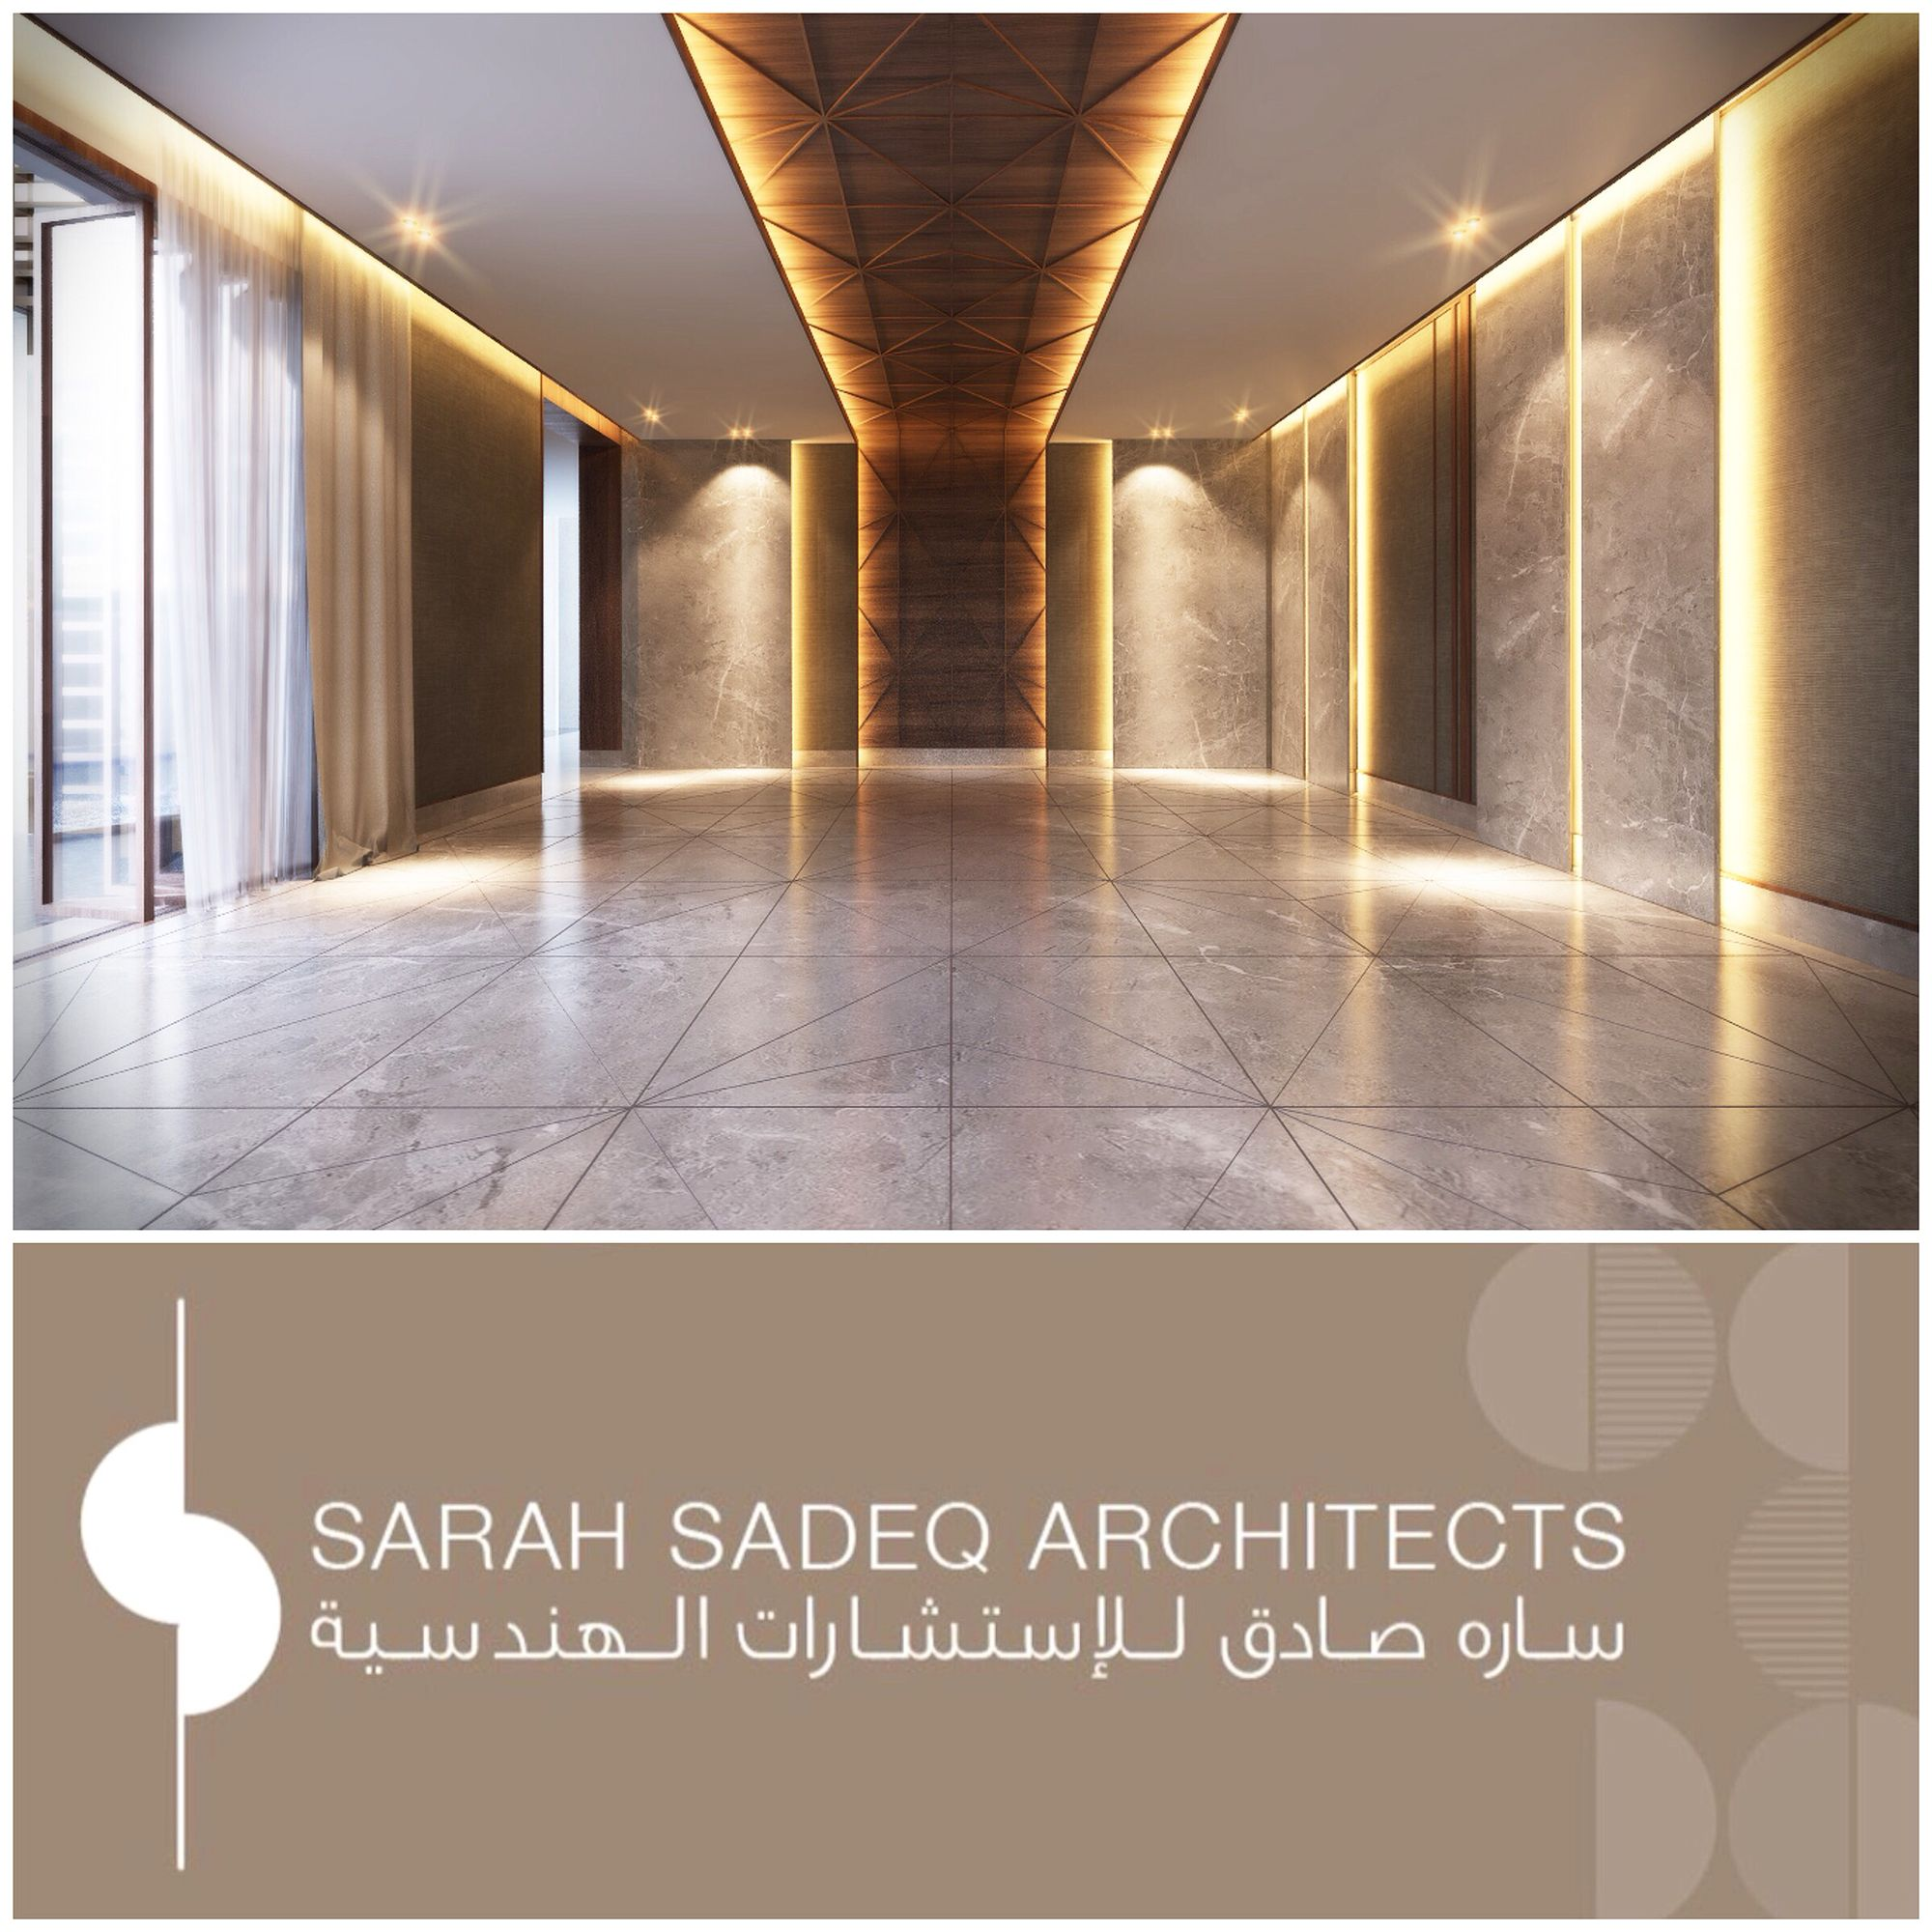 Private Villa Sarah Sadeq Architects Kuwait: Interior Private Villa 500 M Kuwait Sarah Sadeq Architects